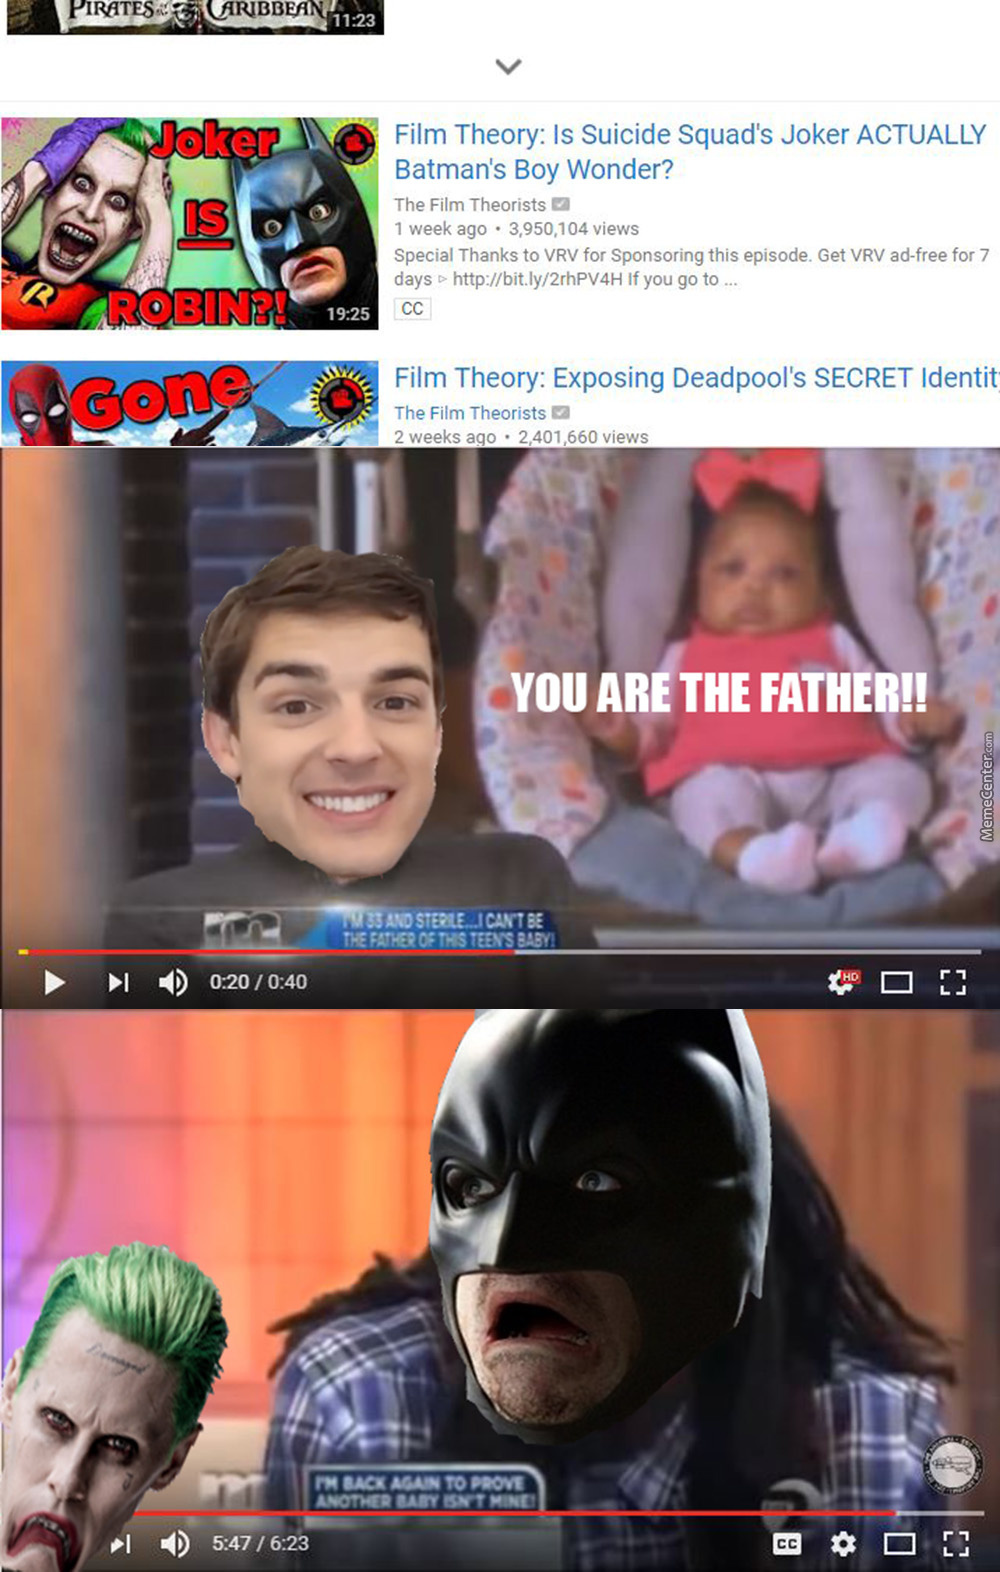 You Are The Father!!!